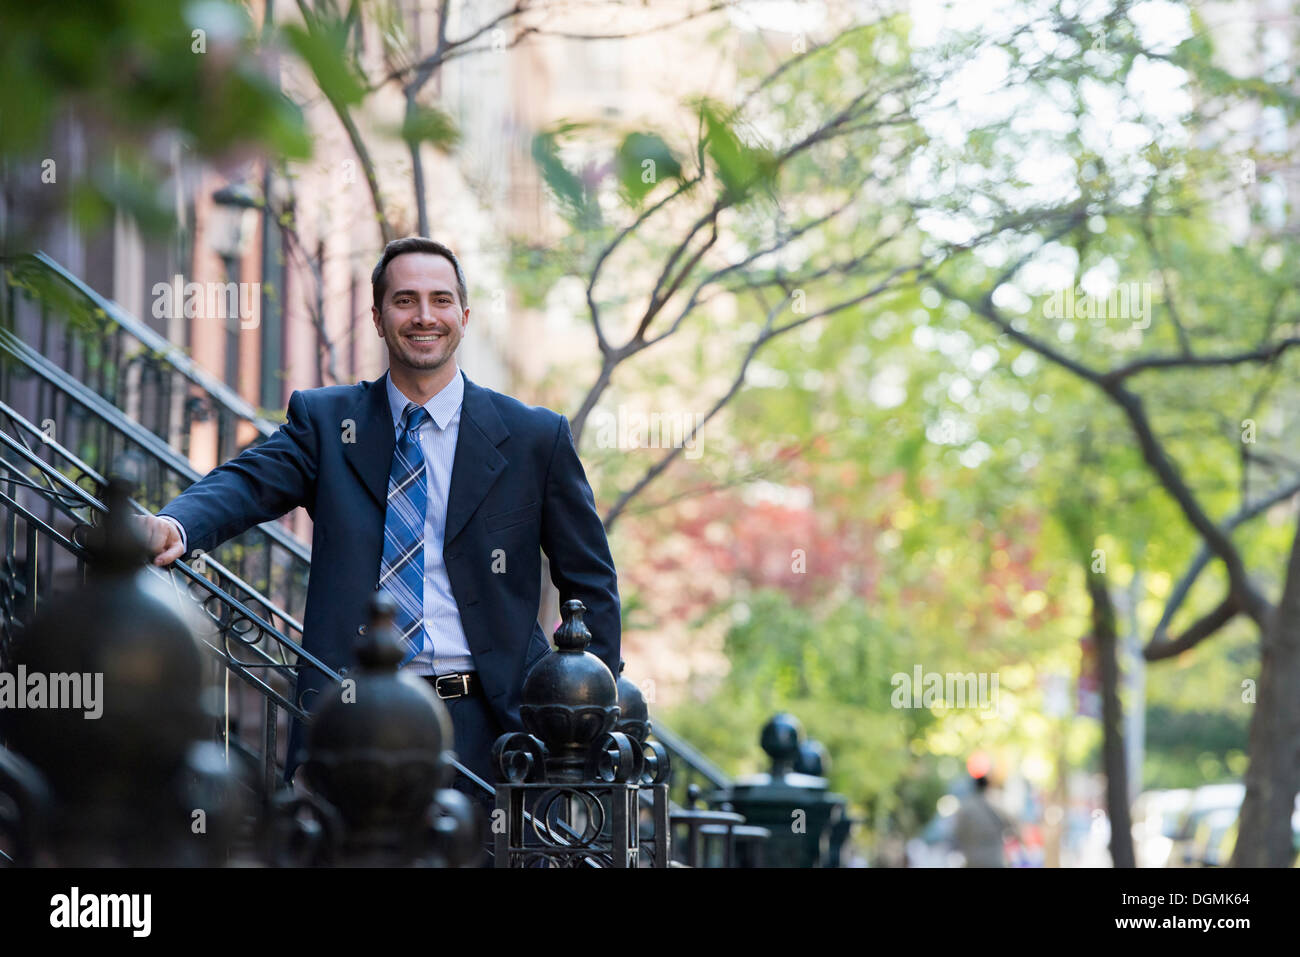 A man in a business suit standing on the steps on a street. - Stock Image